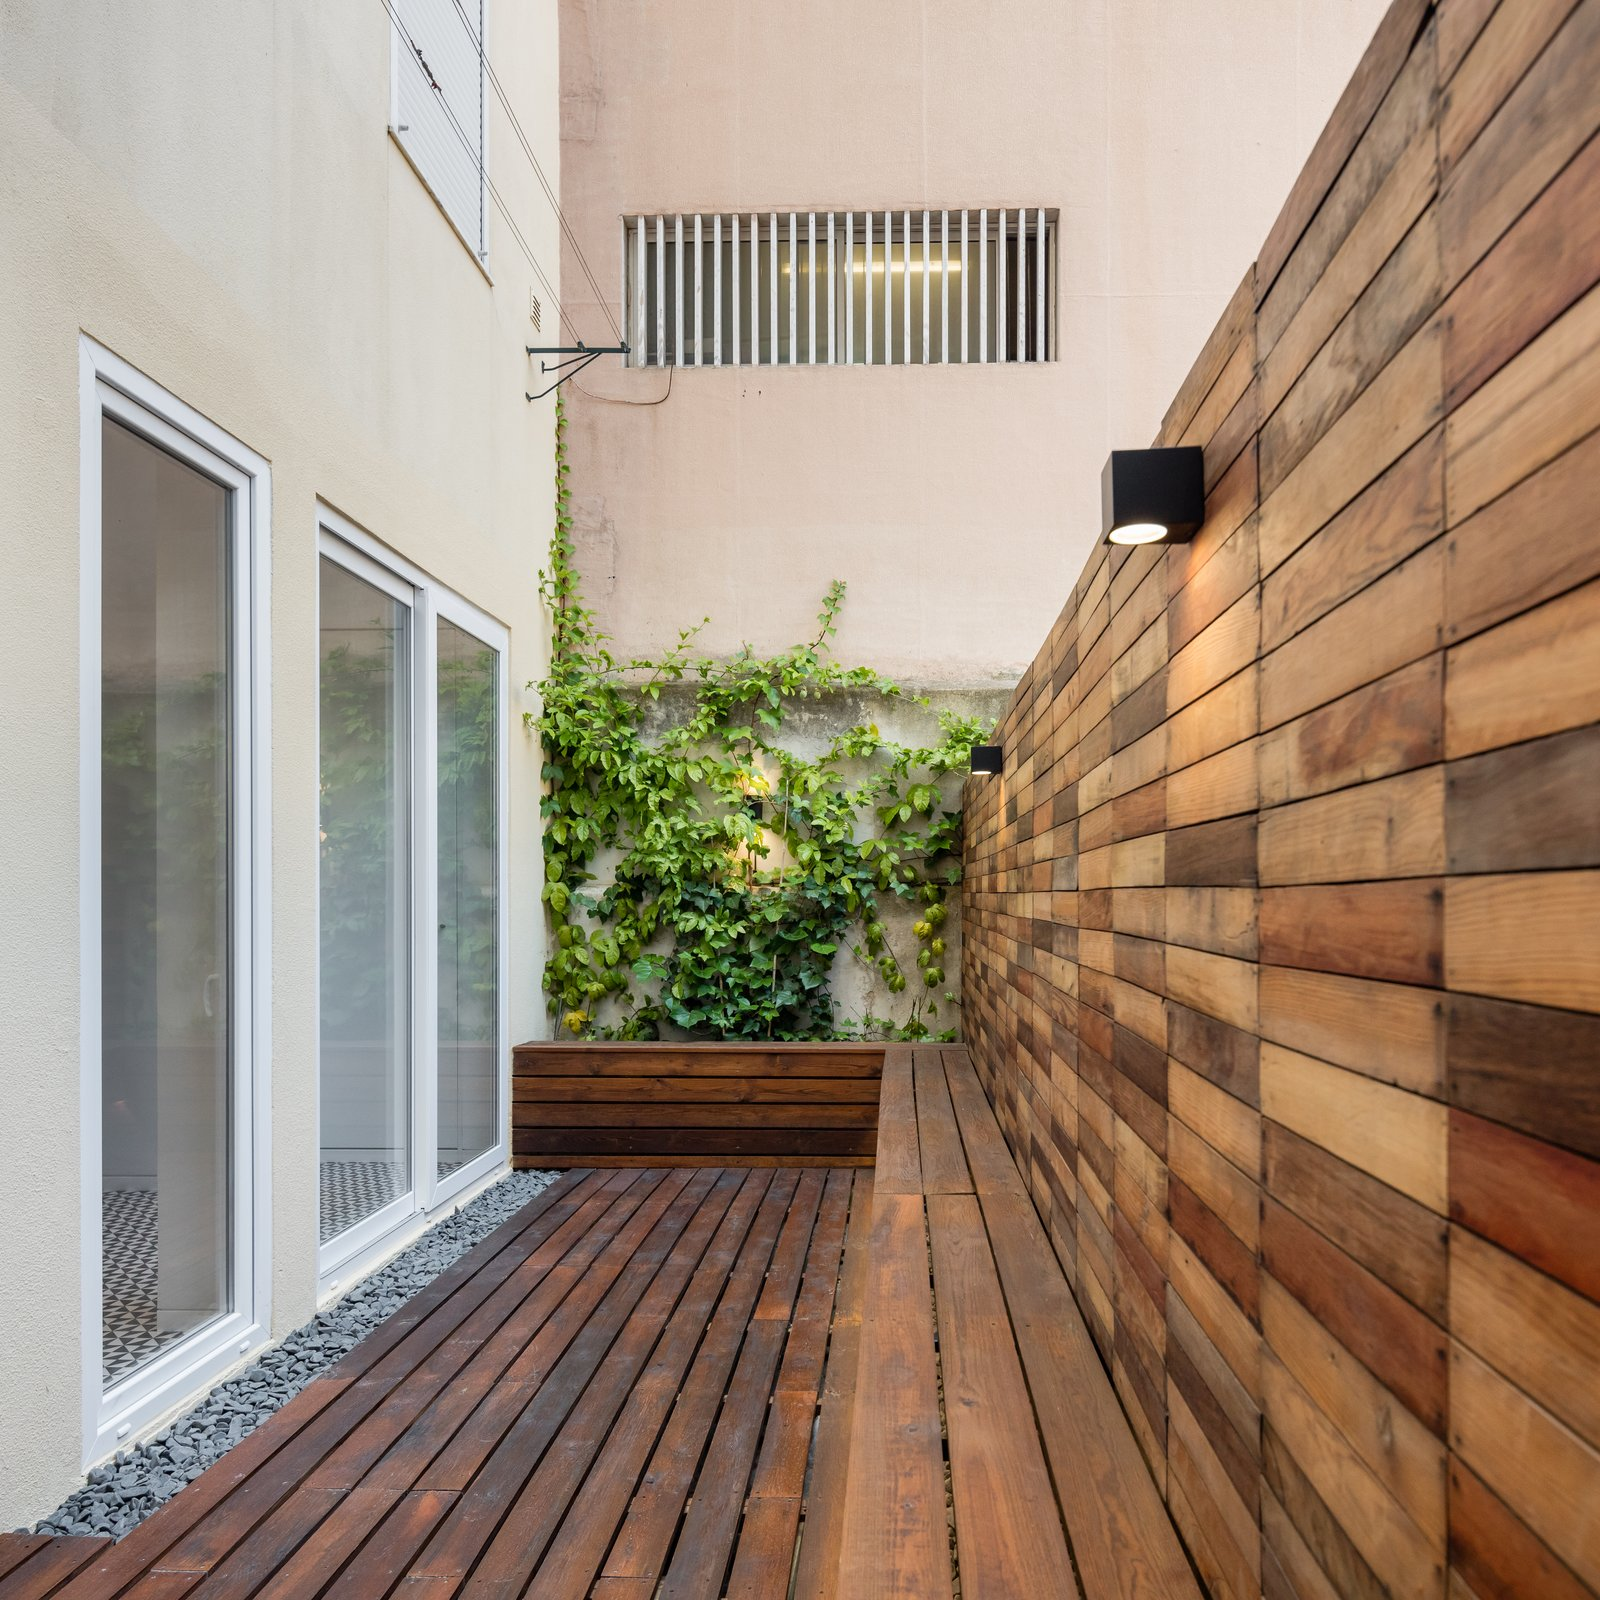 Tagged: Outdoor, Back Yard, Small Patio, Porch, Deck, Trees, Boulders, Wood Patio, Porch, Deck, and Hanging Lighting.  Rua Maria Loft by KEMA studio